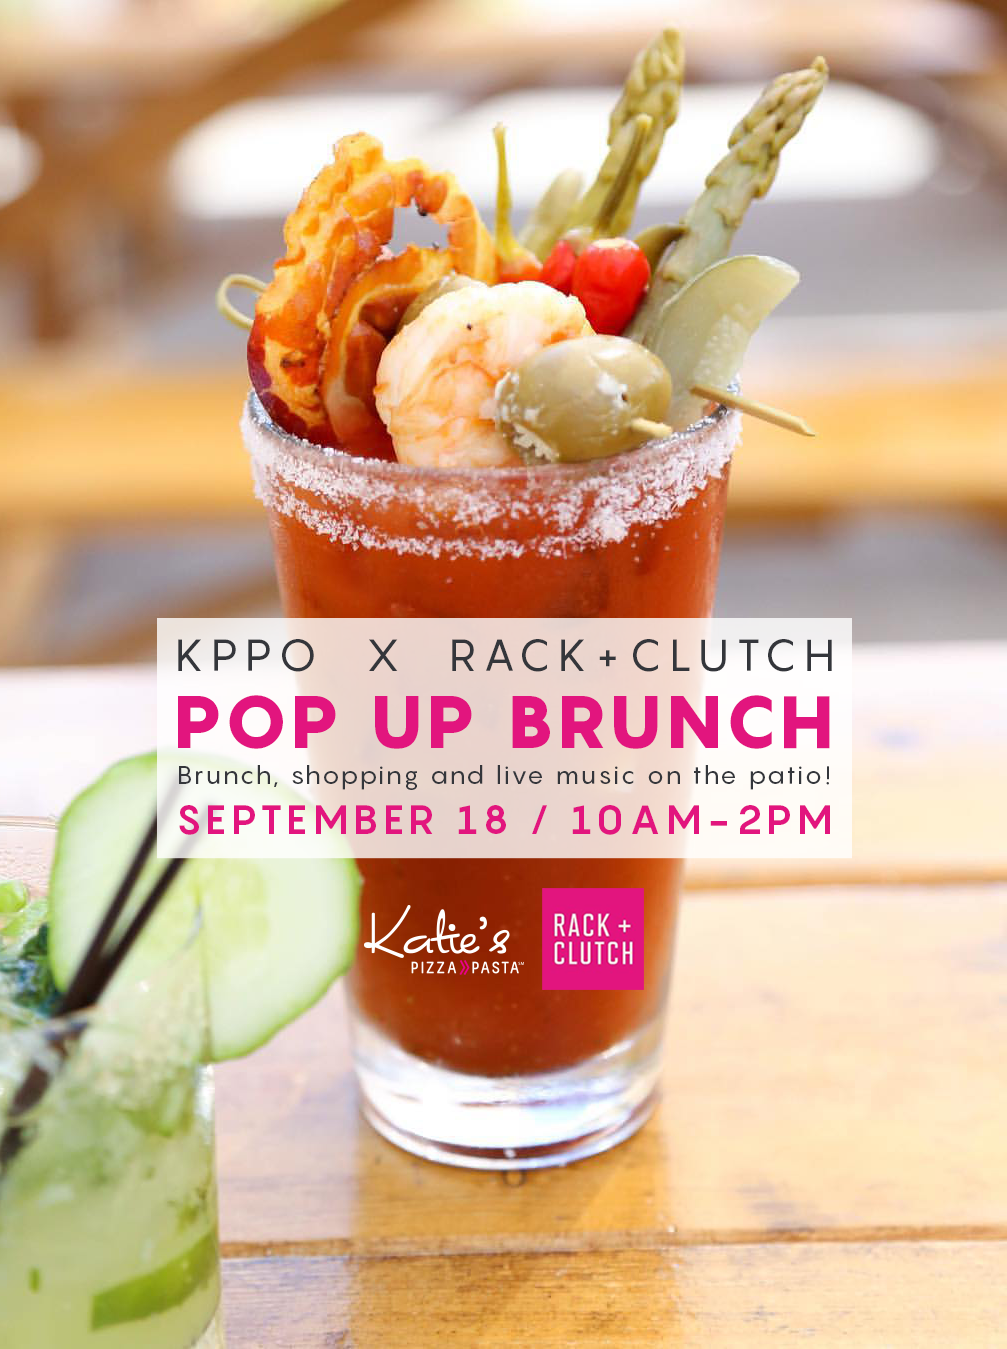 Join Us September 18 for a Special Brunch Event With Rack + Clutch!